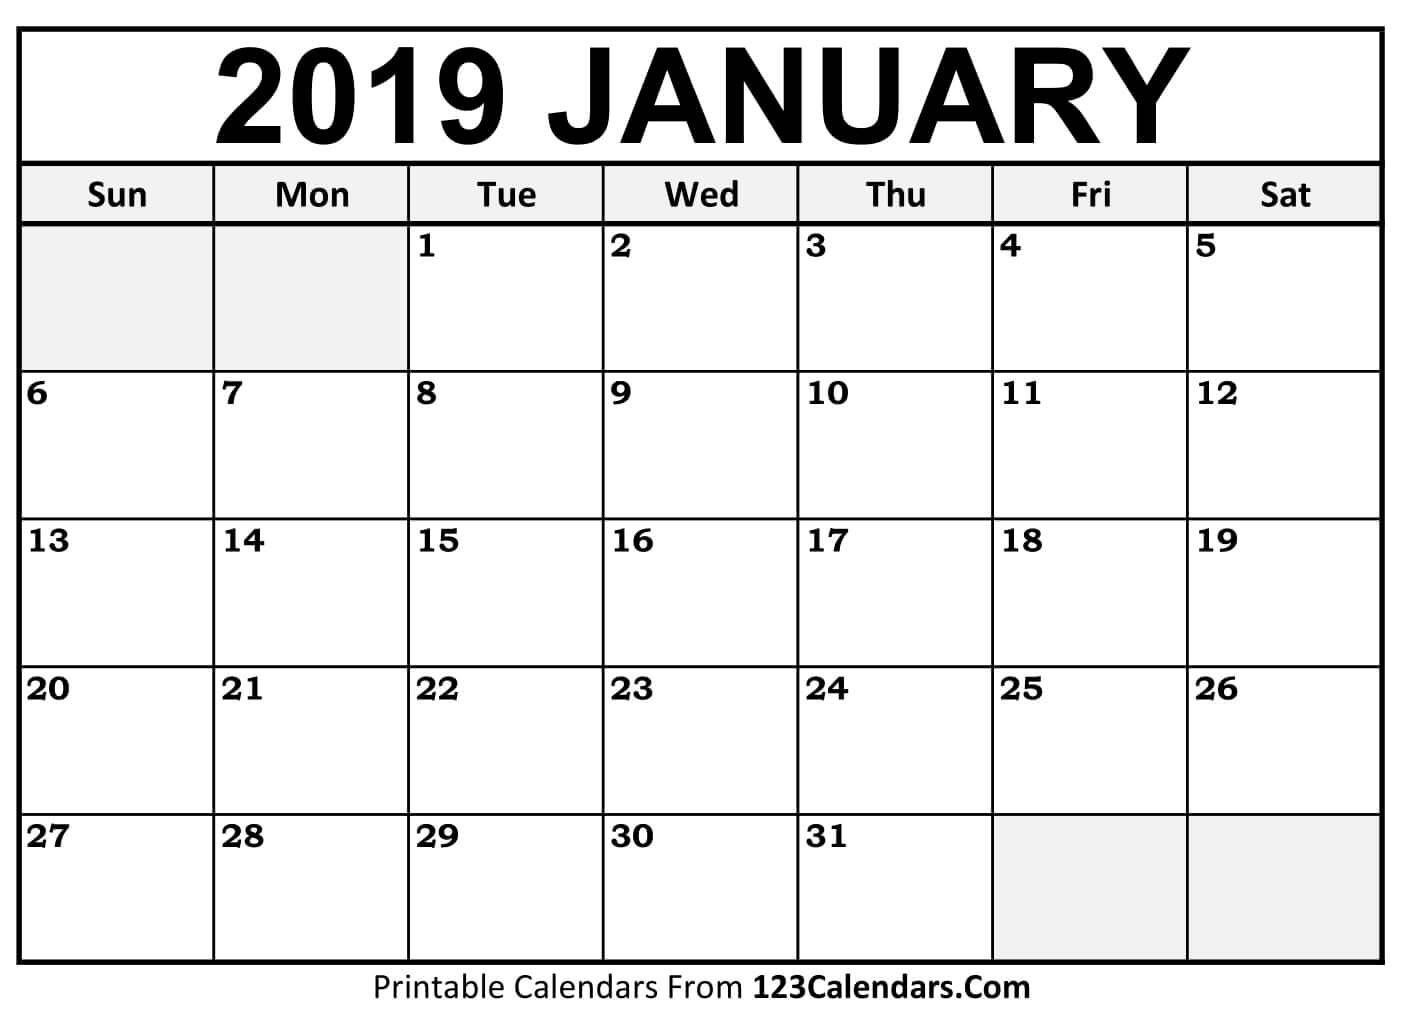 Printable January 2019 Calendar Templates - 123Calendars Calendar 2019 January To April